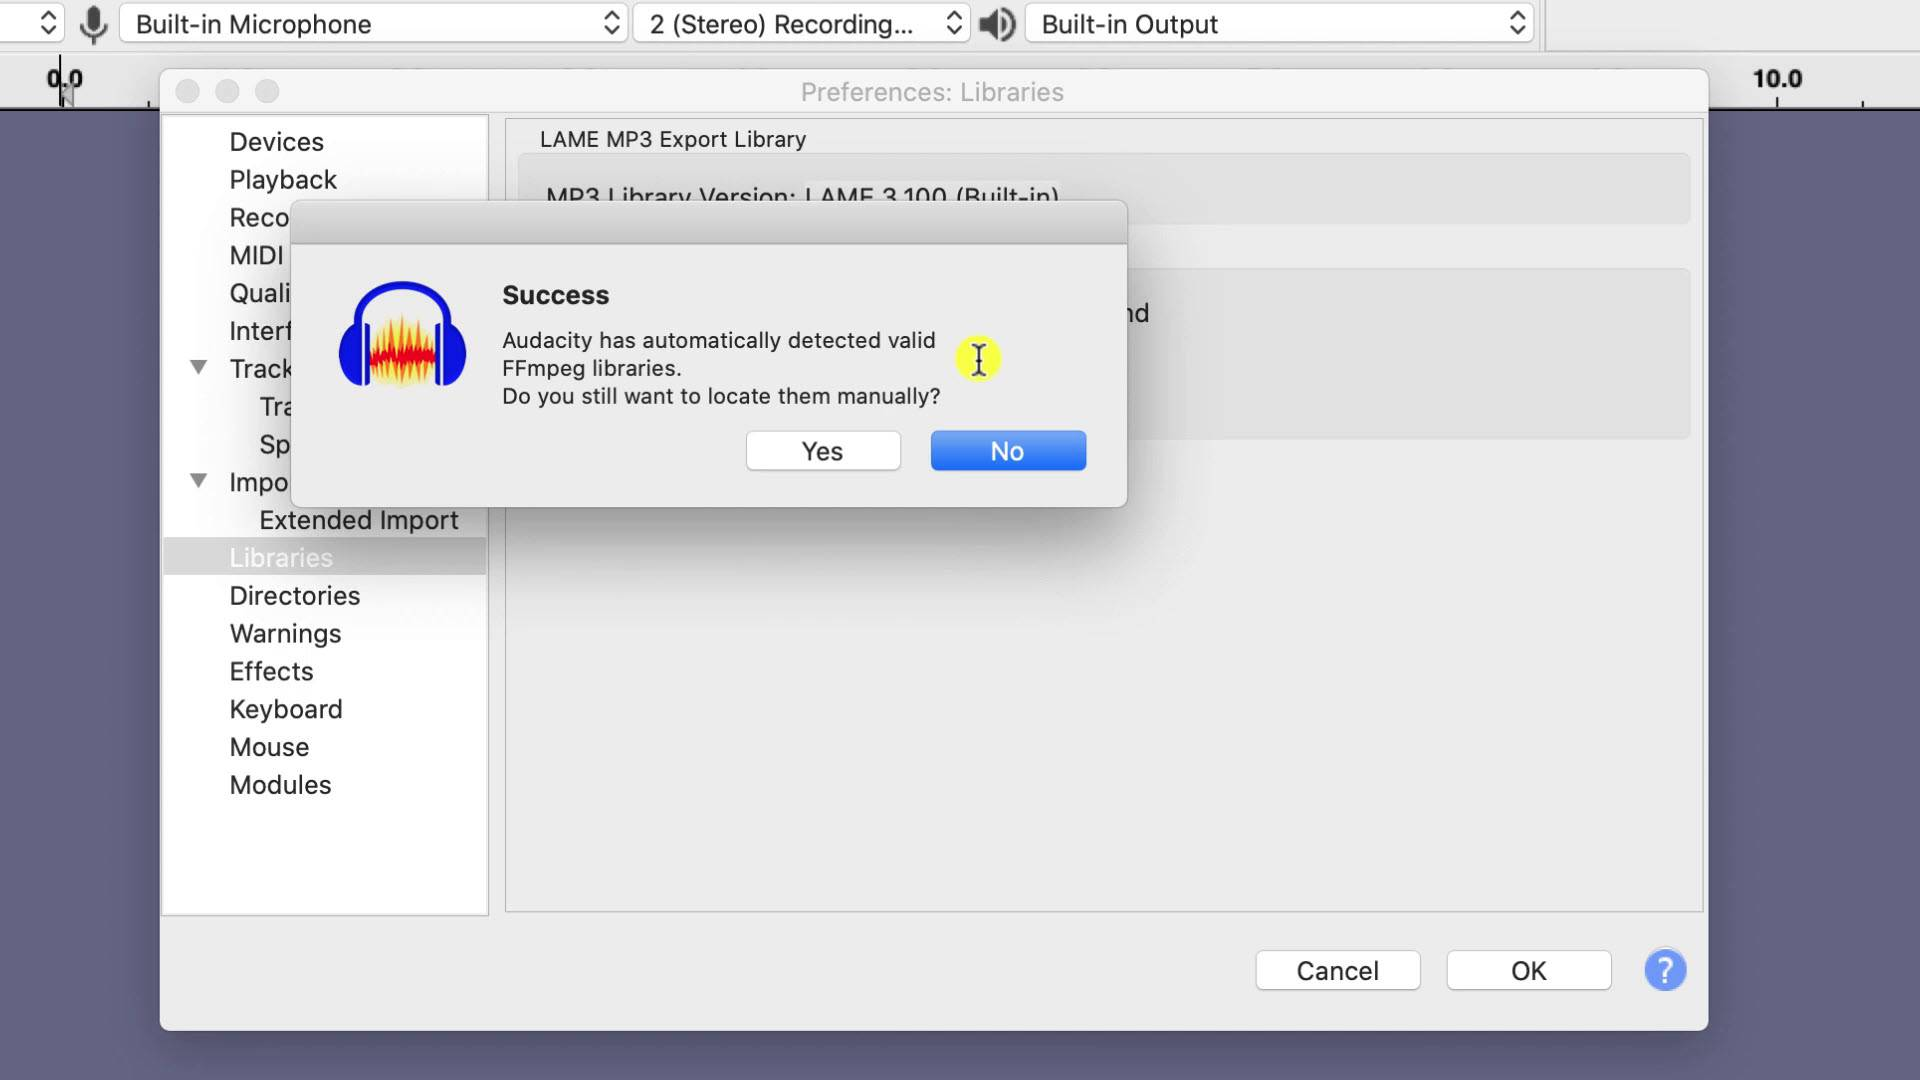 successfully imported the ffmpeg libraries into audacity on mac